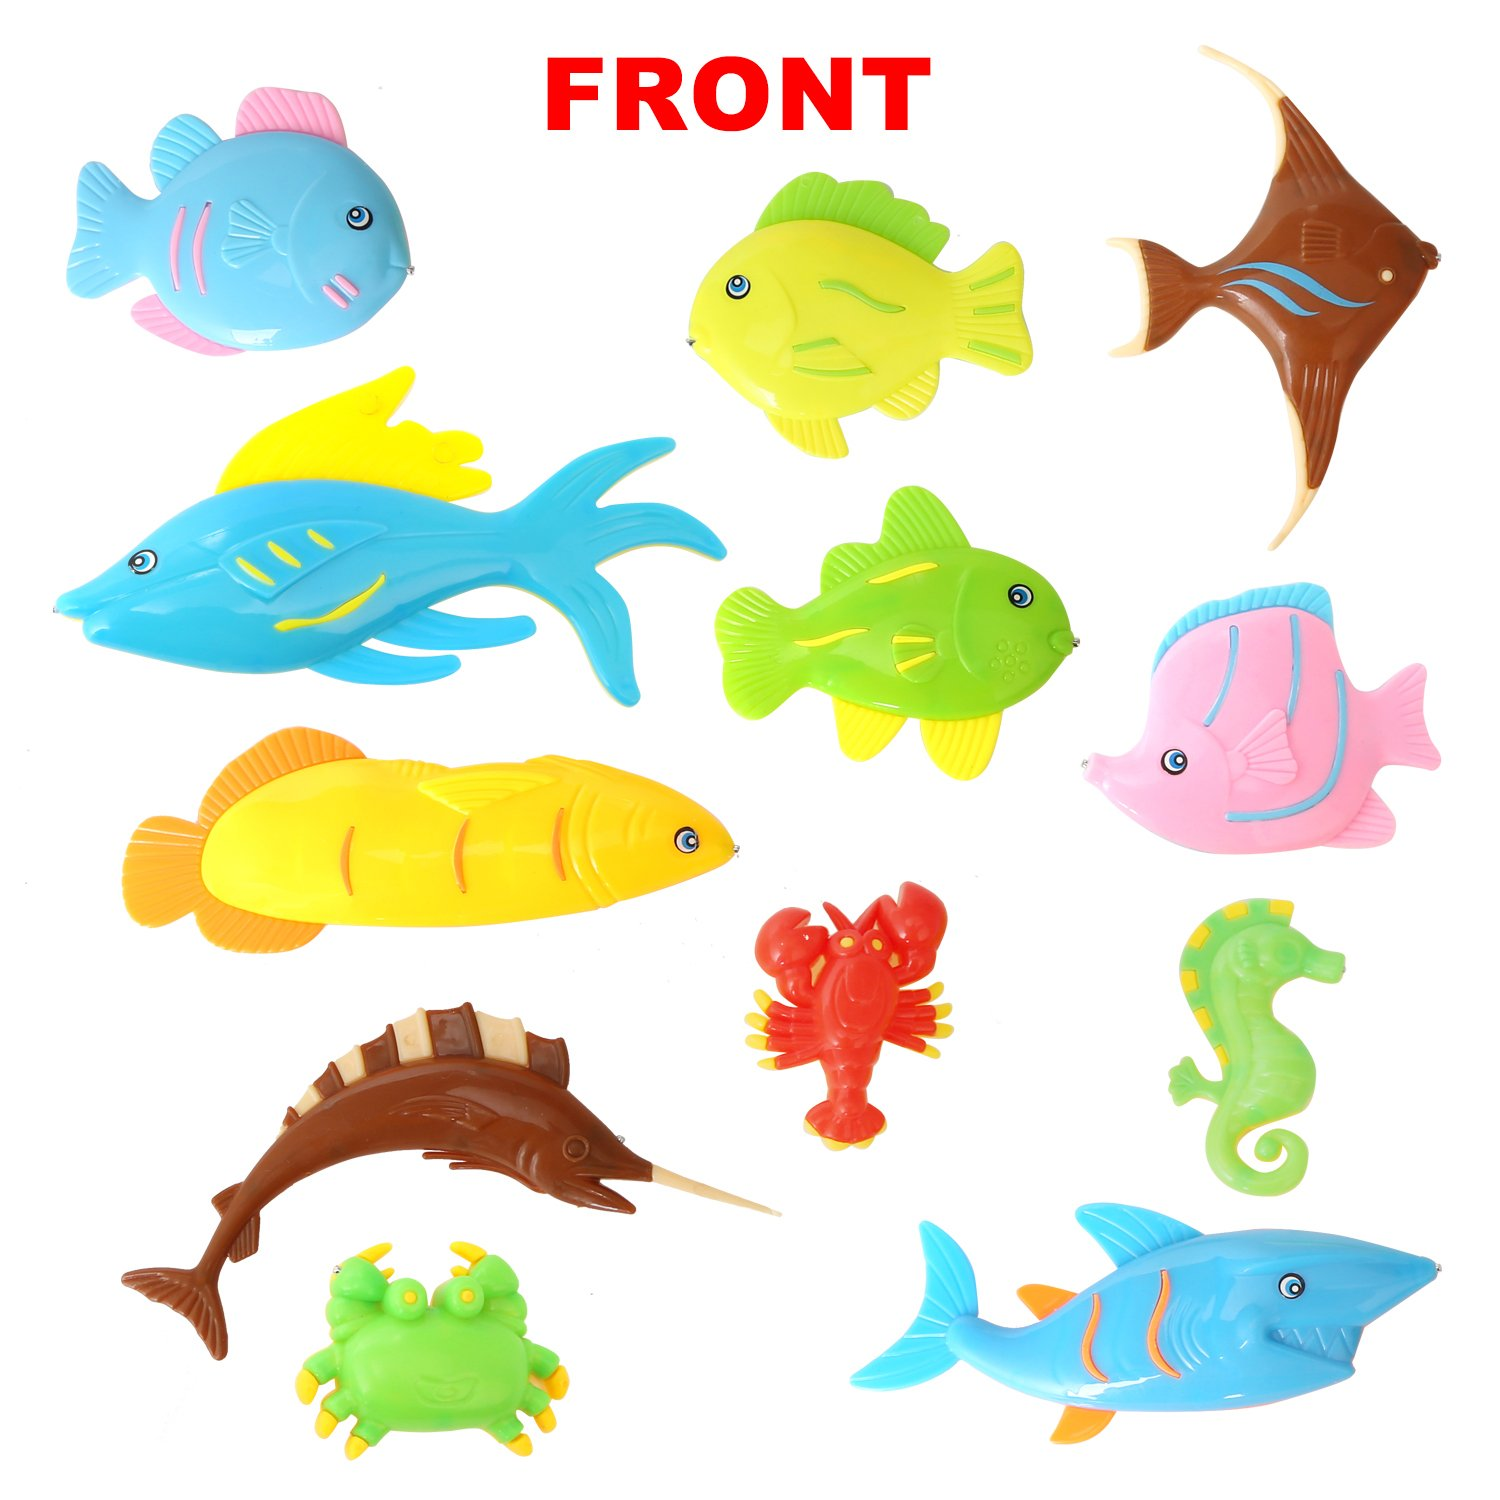 Digabi 13PCS Fish Magnetic Fishing Toys Colorful Magnet Fishing Game with Fishing Rod for Kids Toddlers